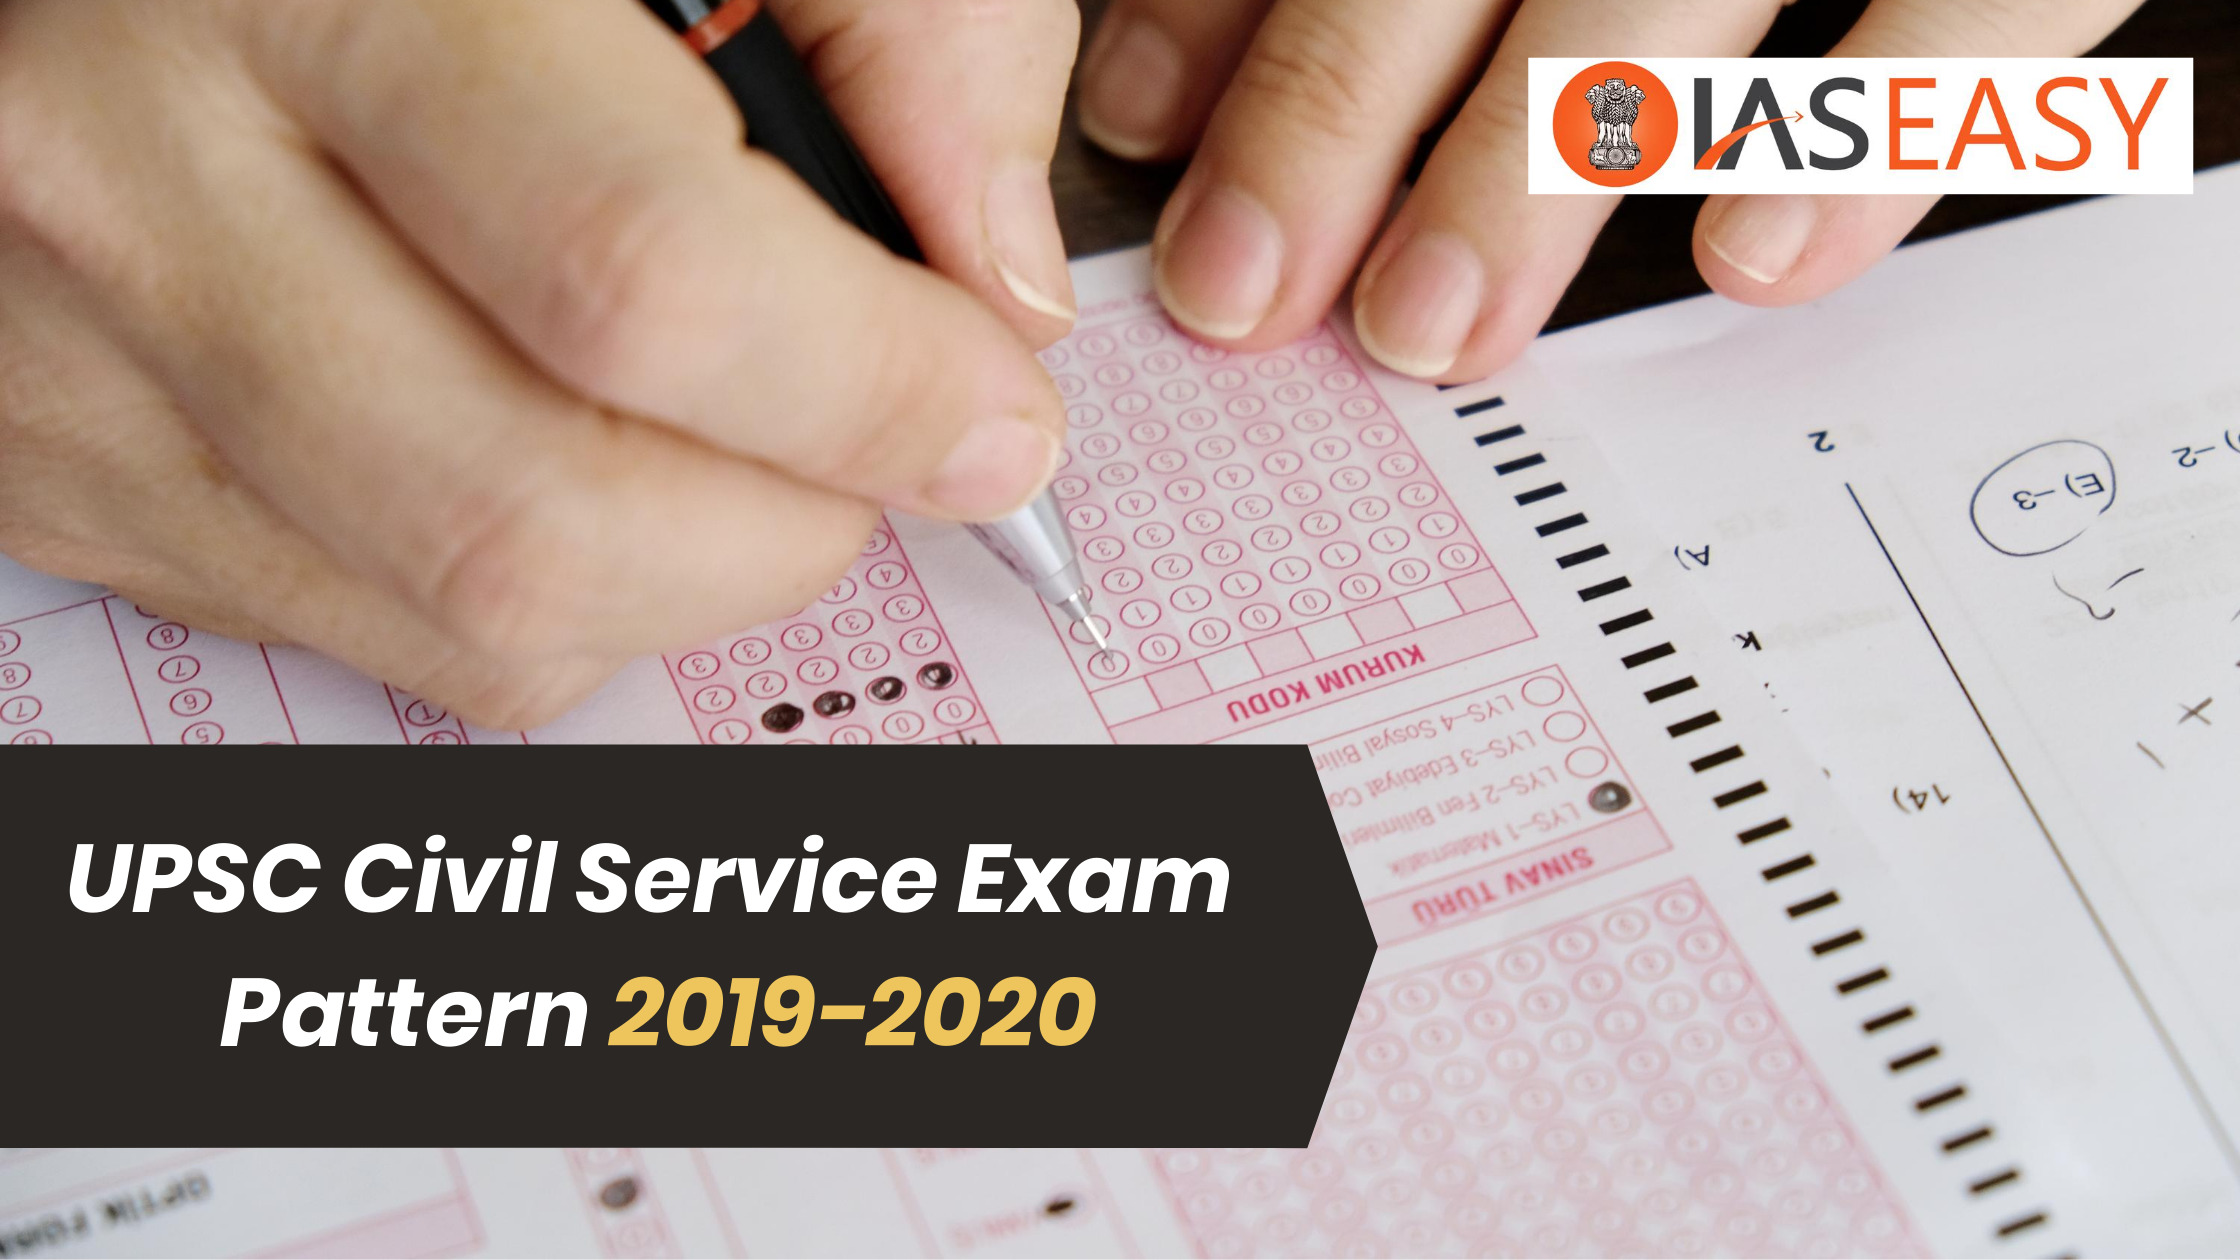 UPSC Civil Service Exam Pattern 2019-2020